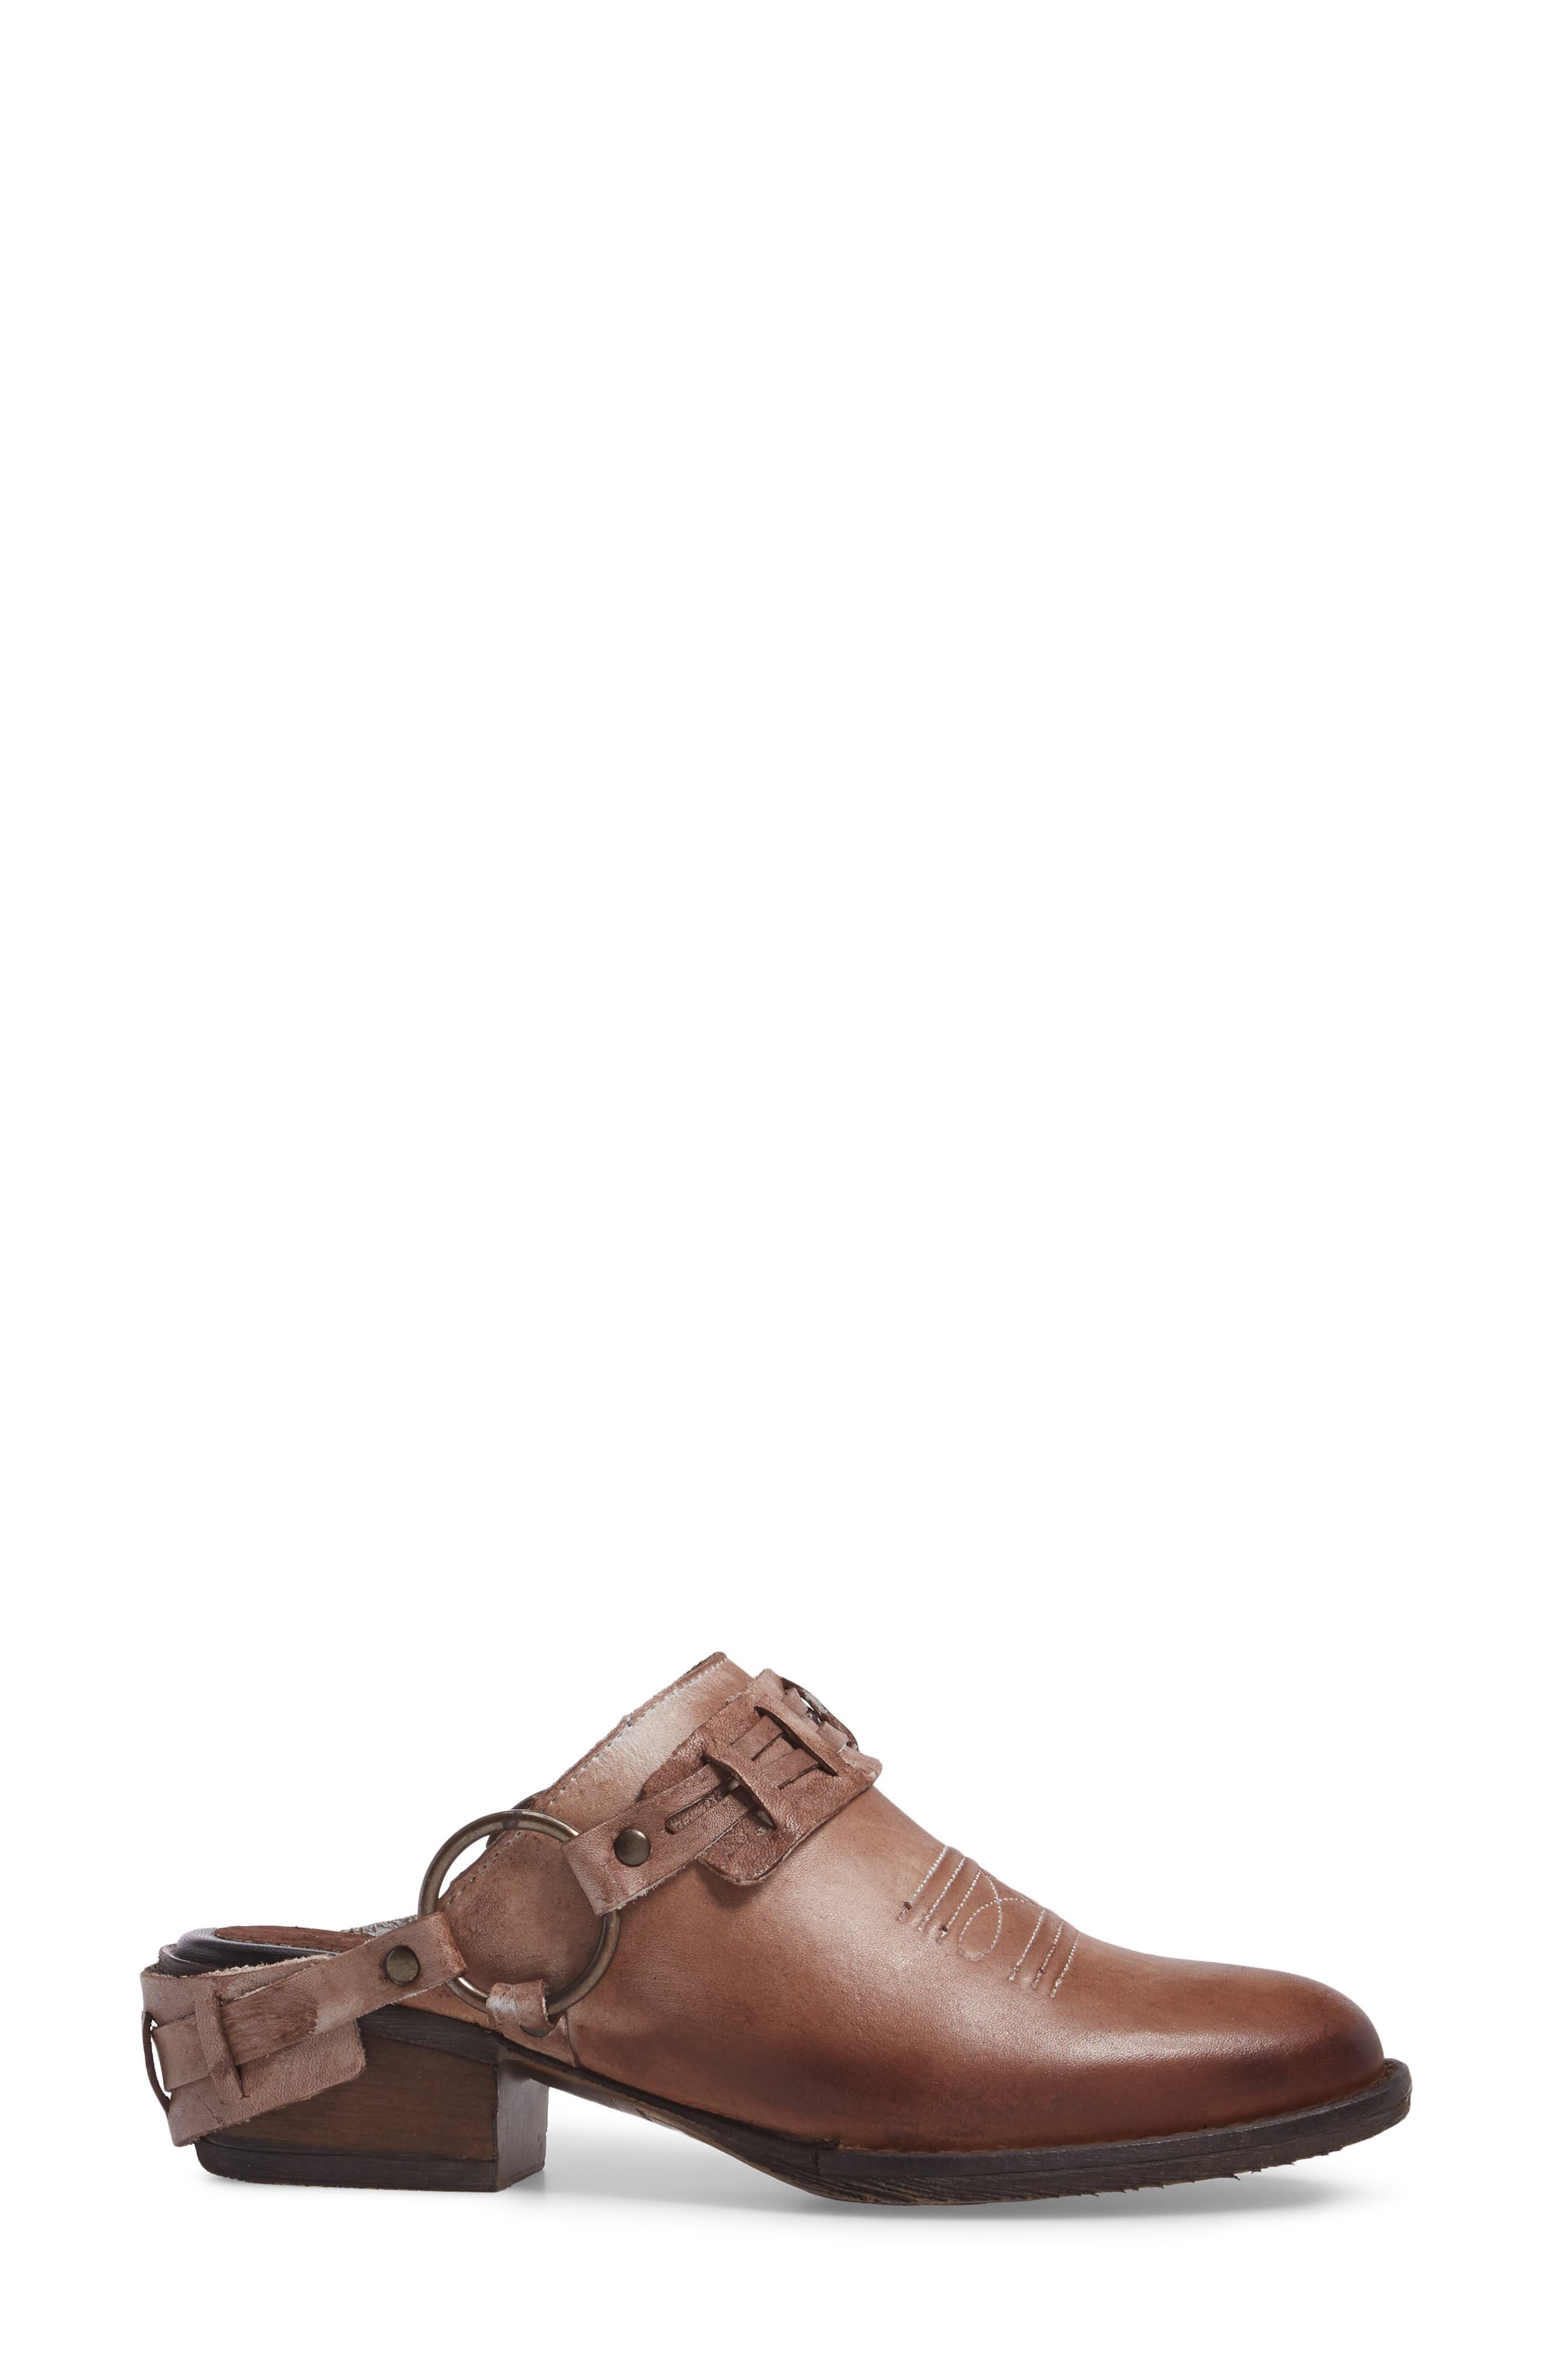 Eriko Western Harness Mule,                             Alternate thumbnail 3, color,                             Brown